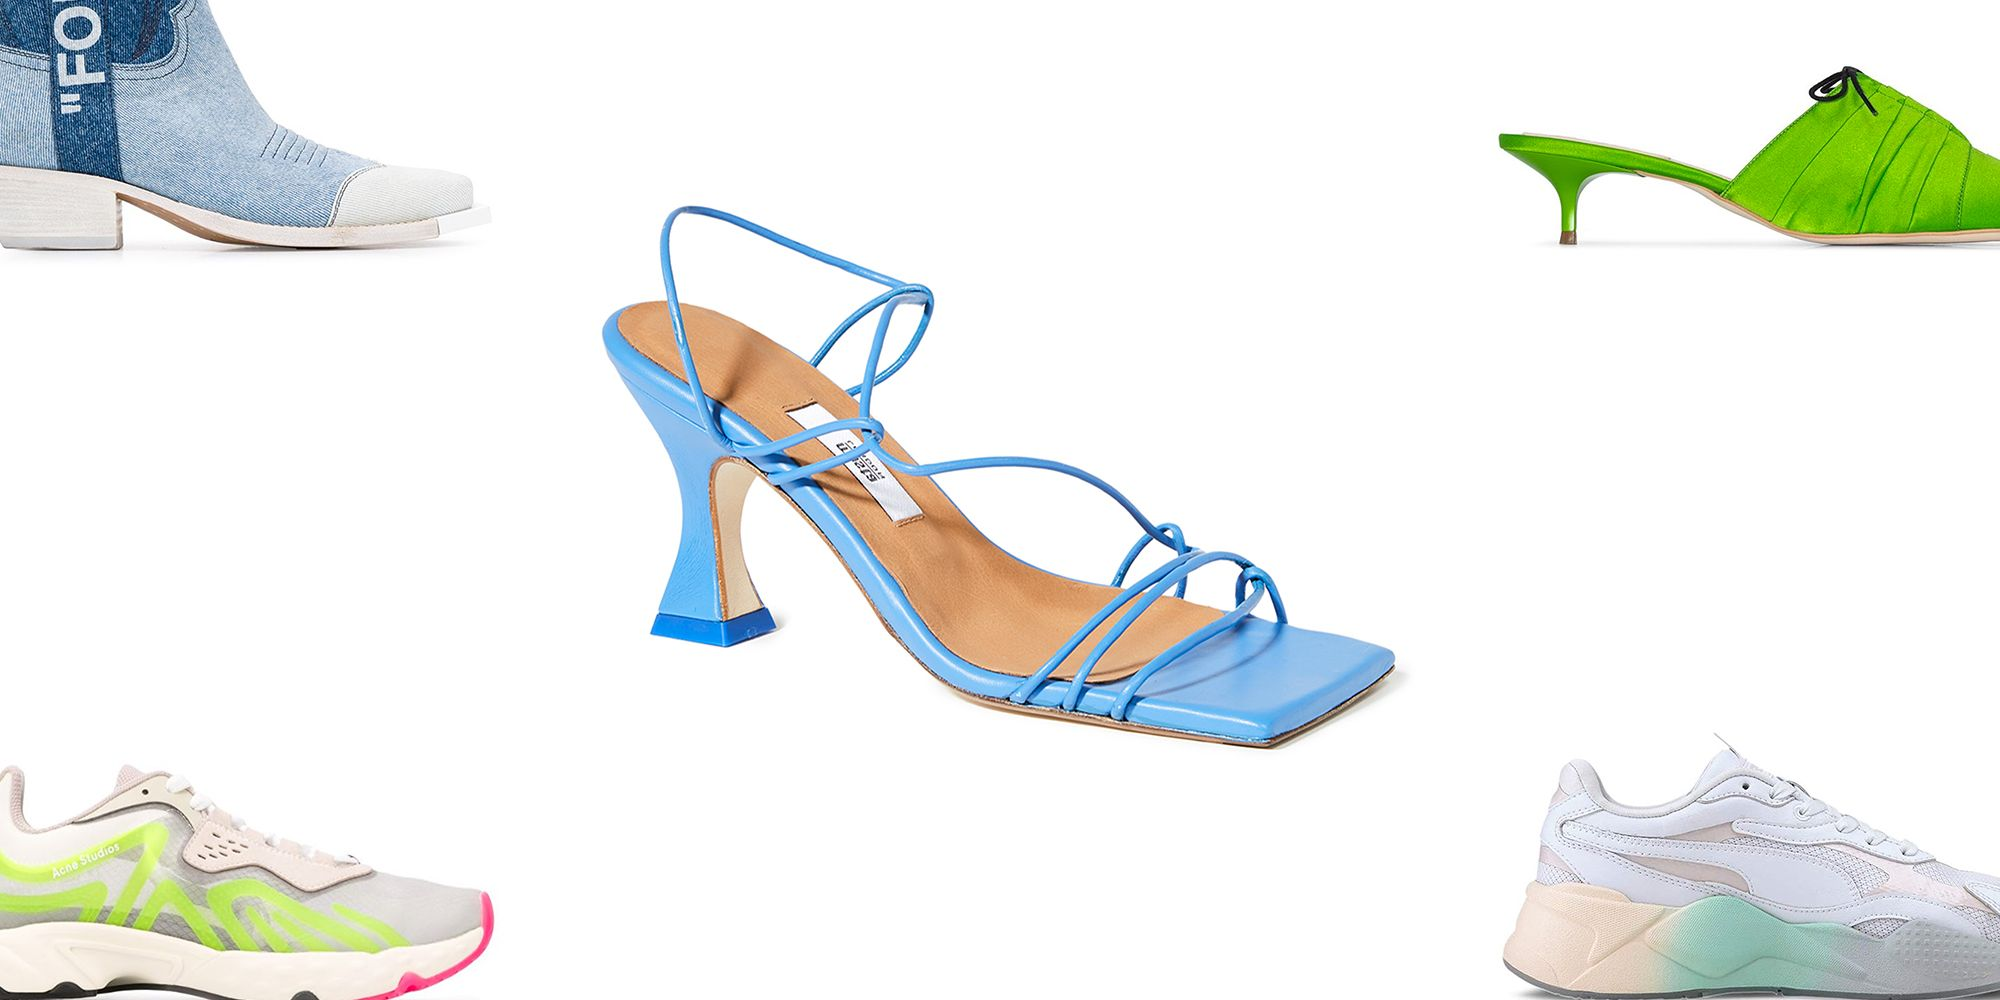 Shopbop is Having a 30% Off Shoe Sale Right Now